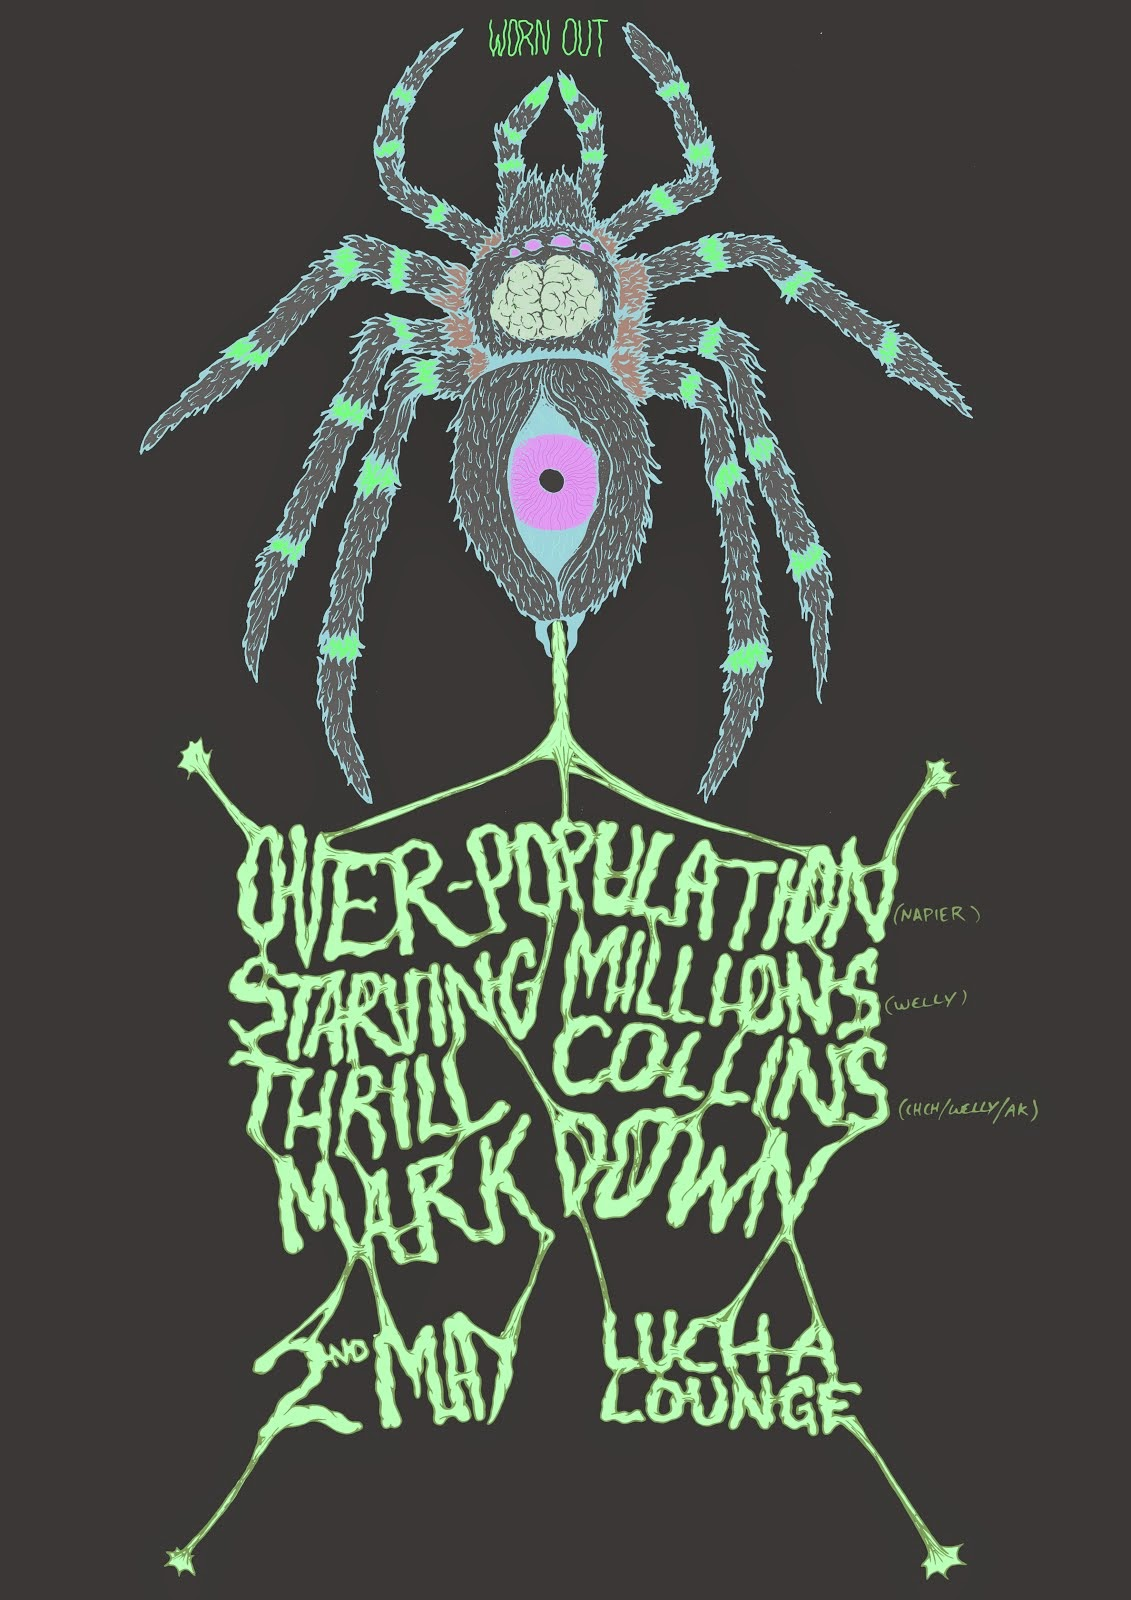 Starving Million/OverPopulation/Thrill Collins